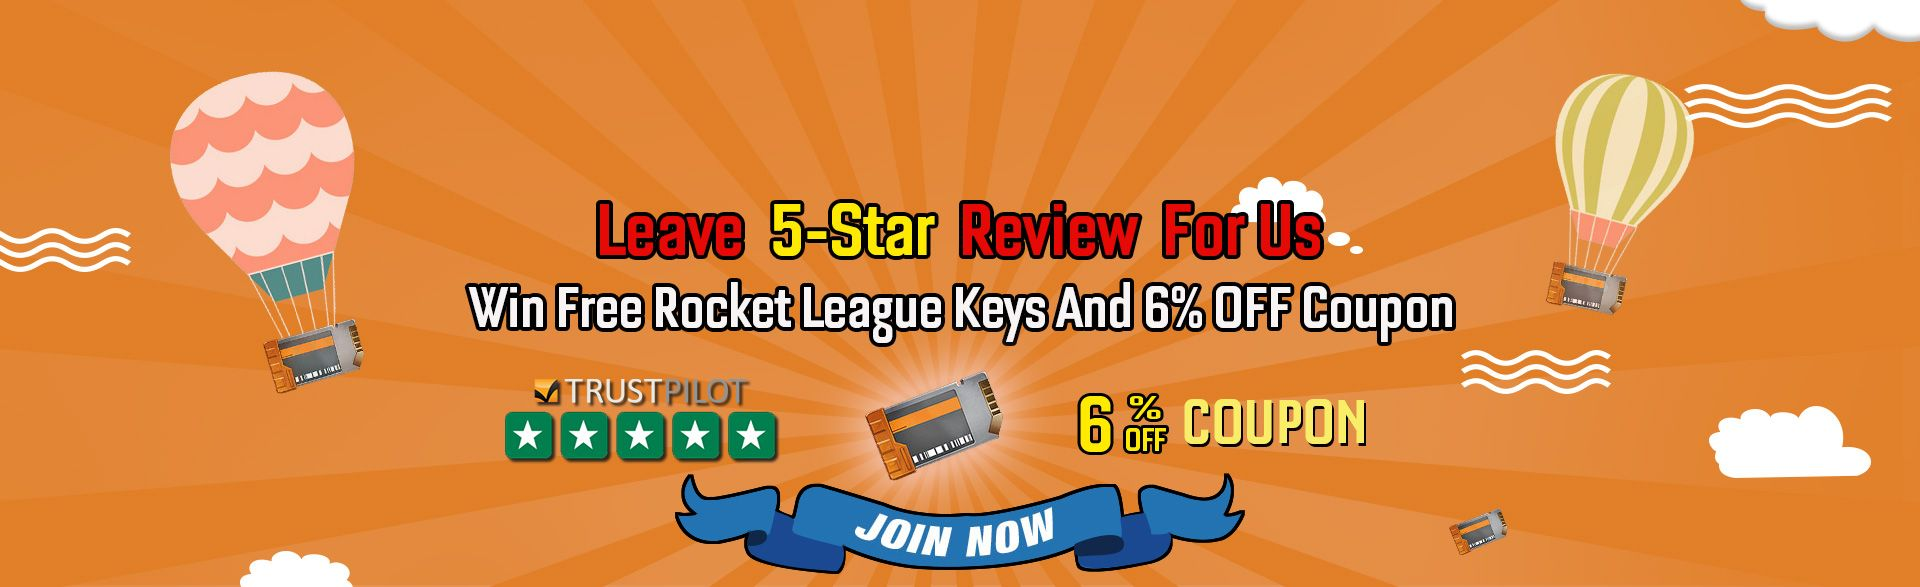 Leave 5Star Reviews For Us To Get Free Rocket League Keys